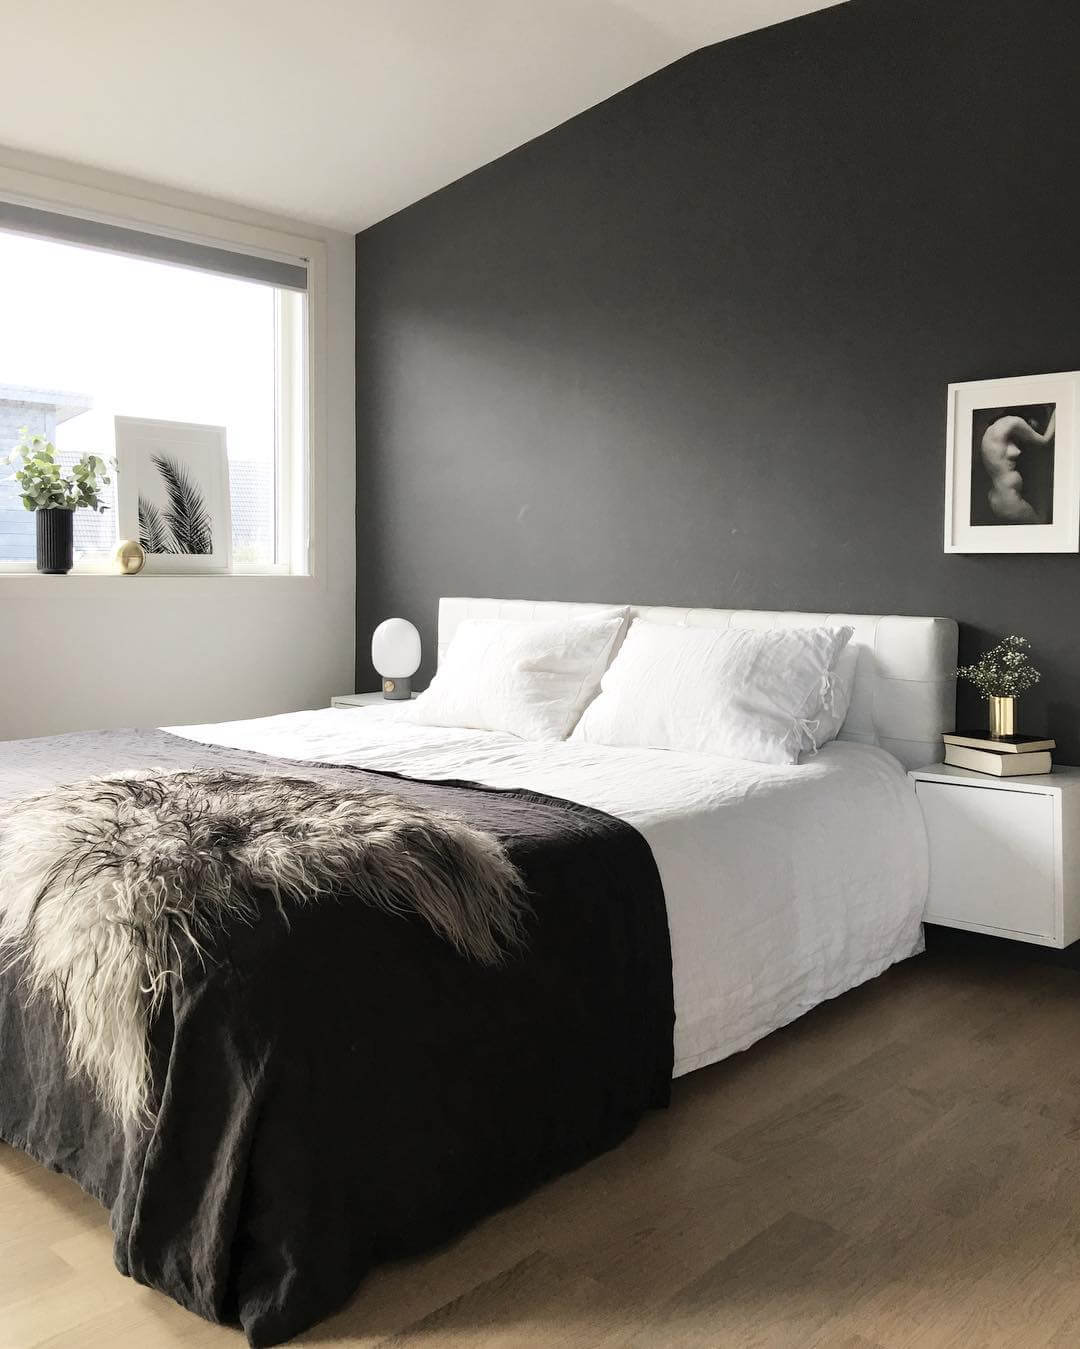 Minimalist bedroom interior design via palettenoir